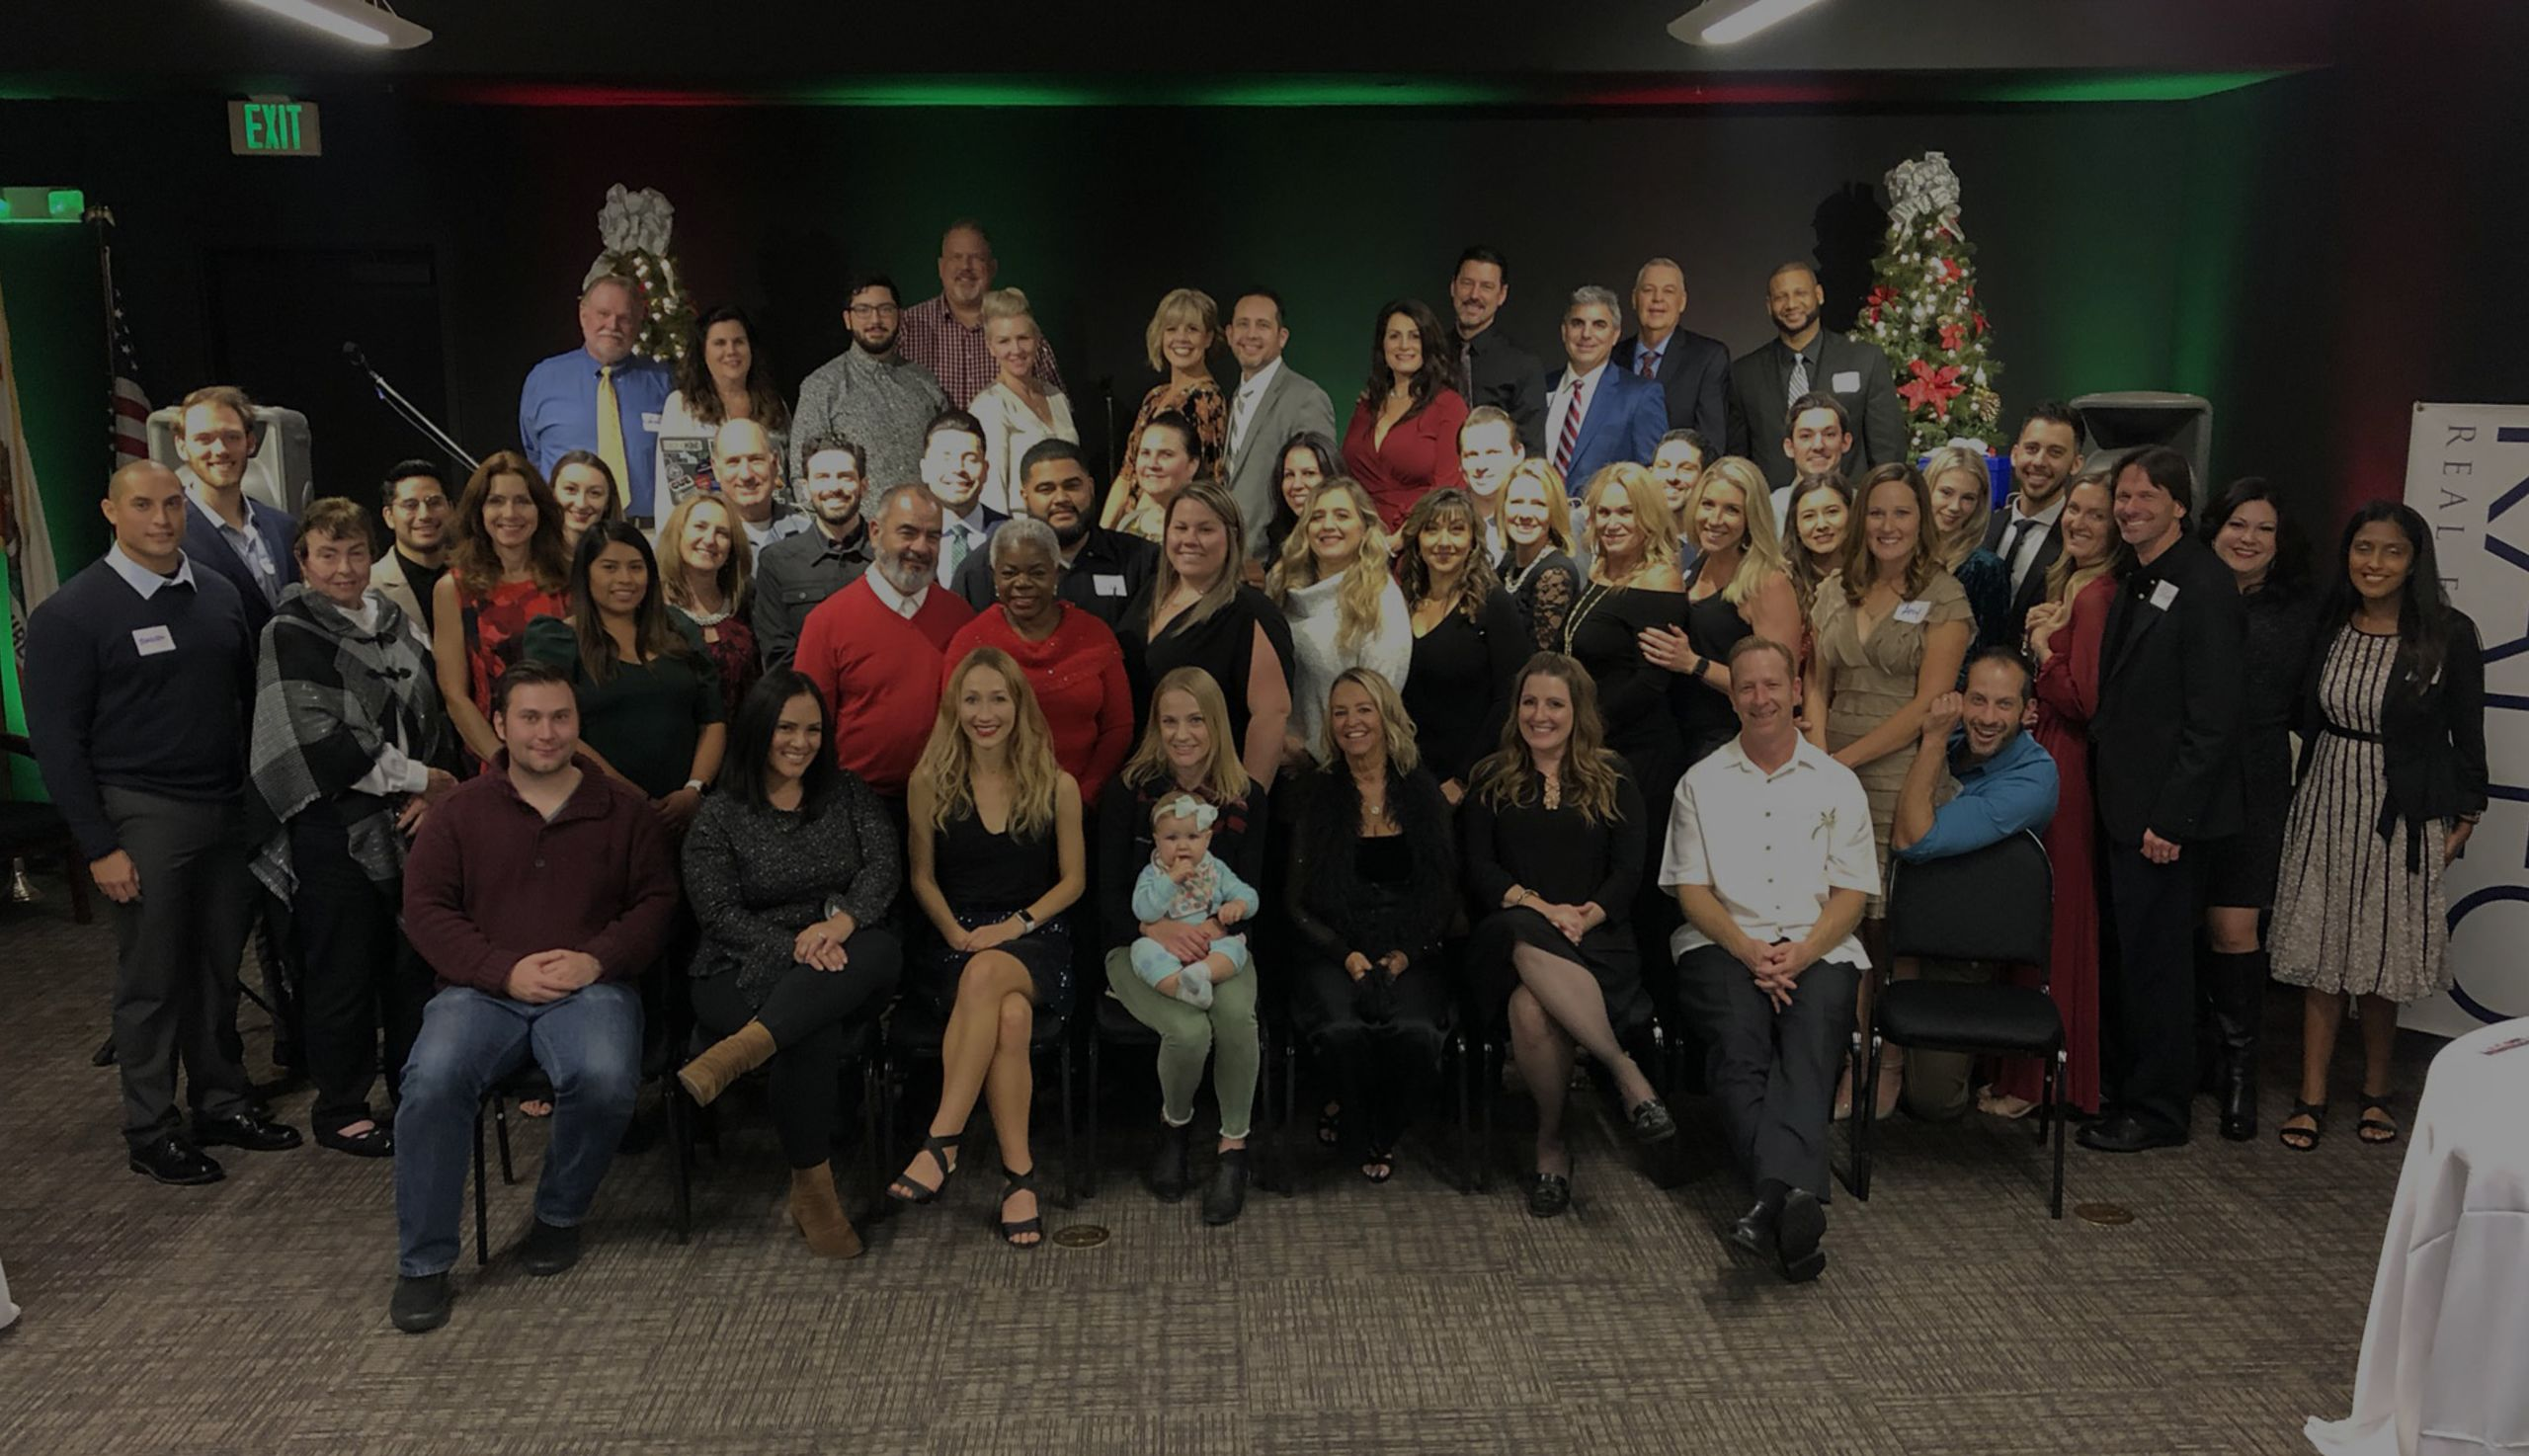 Merry Christmas & Happy Holidays from KALEO!